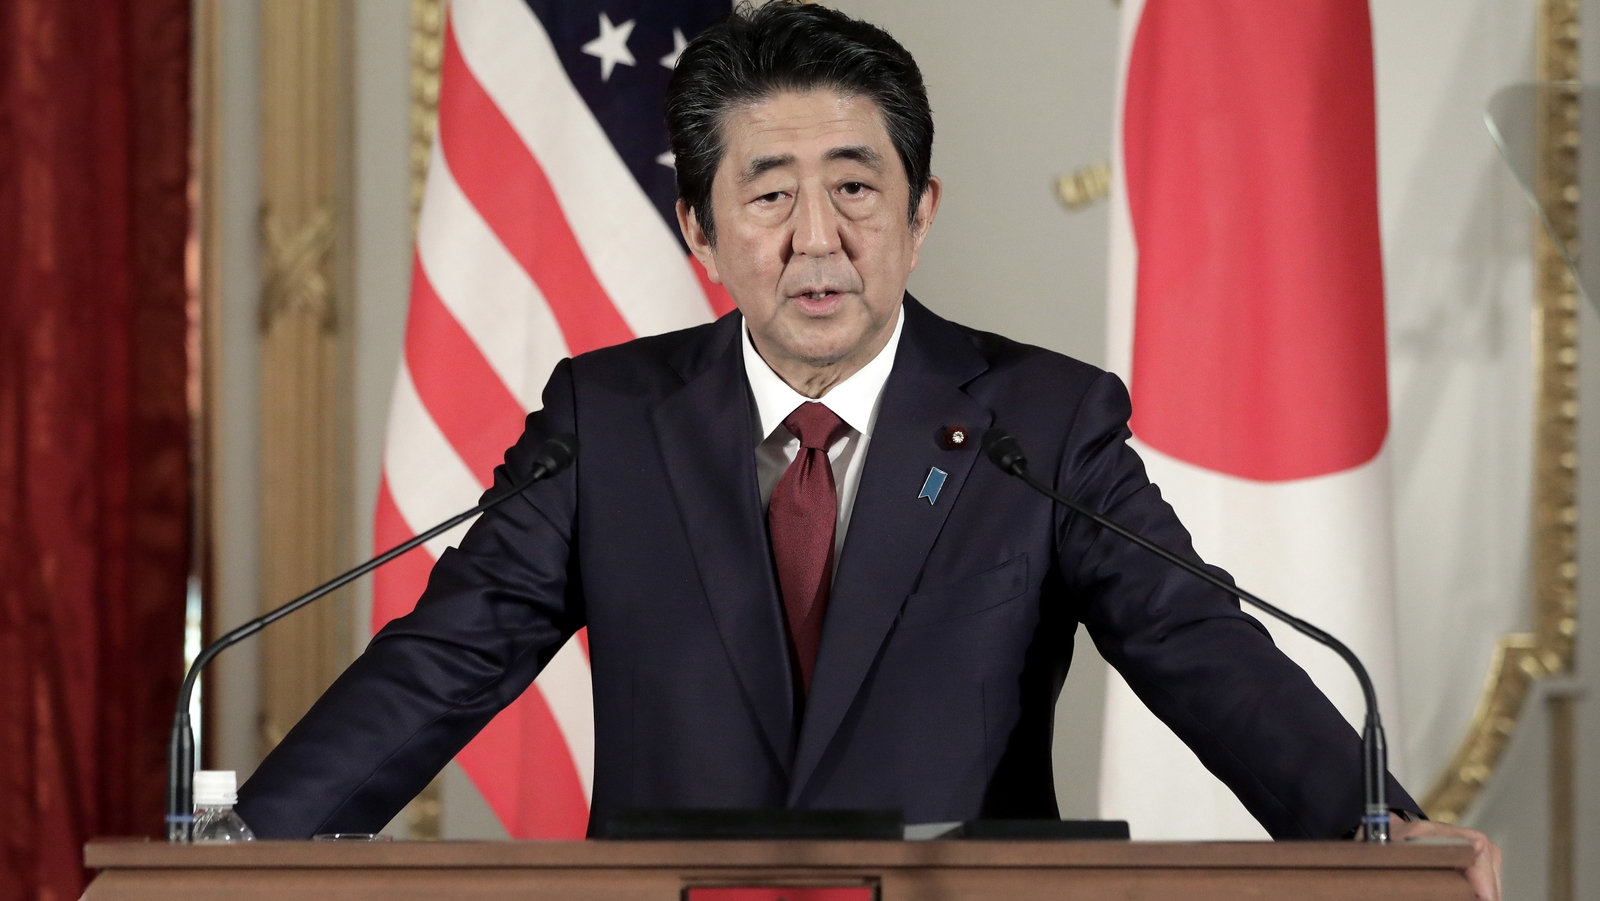 Japan PM Abe to meet Iranian President Hassan Rouhani in New York